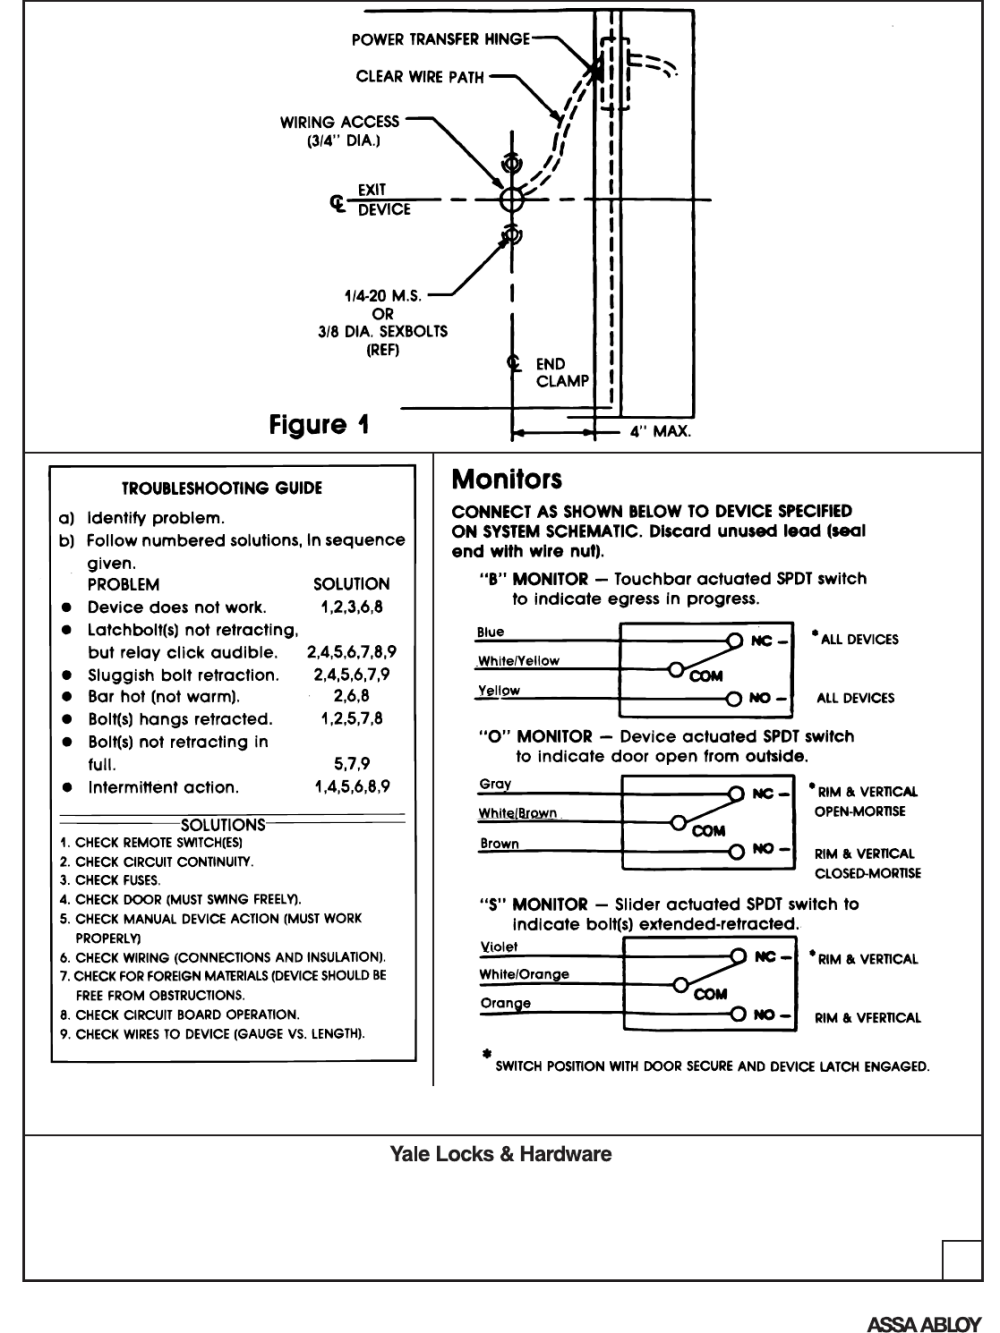 medium resolution of yale 80 9477 0781 001 01 13 exit devices with electric latch electric latch retraction wiring diagram